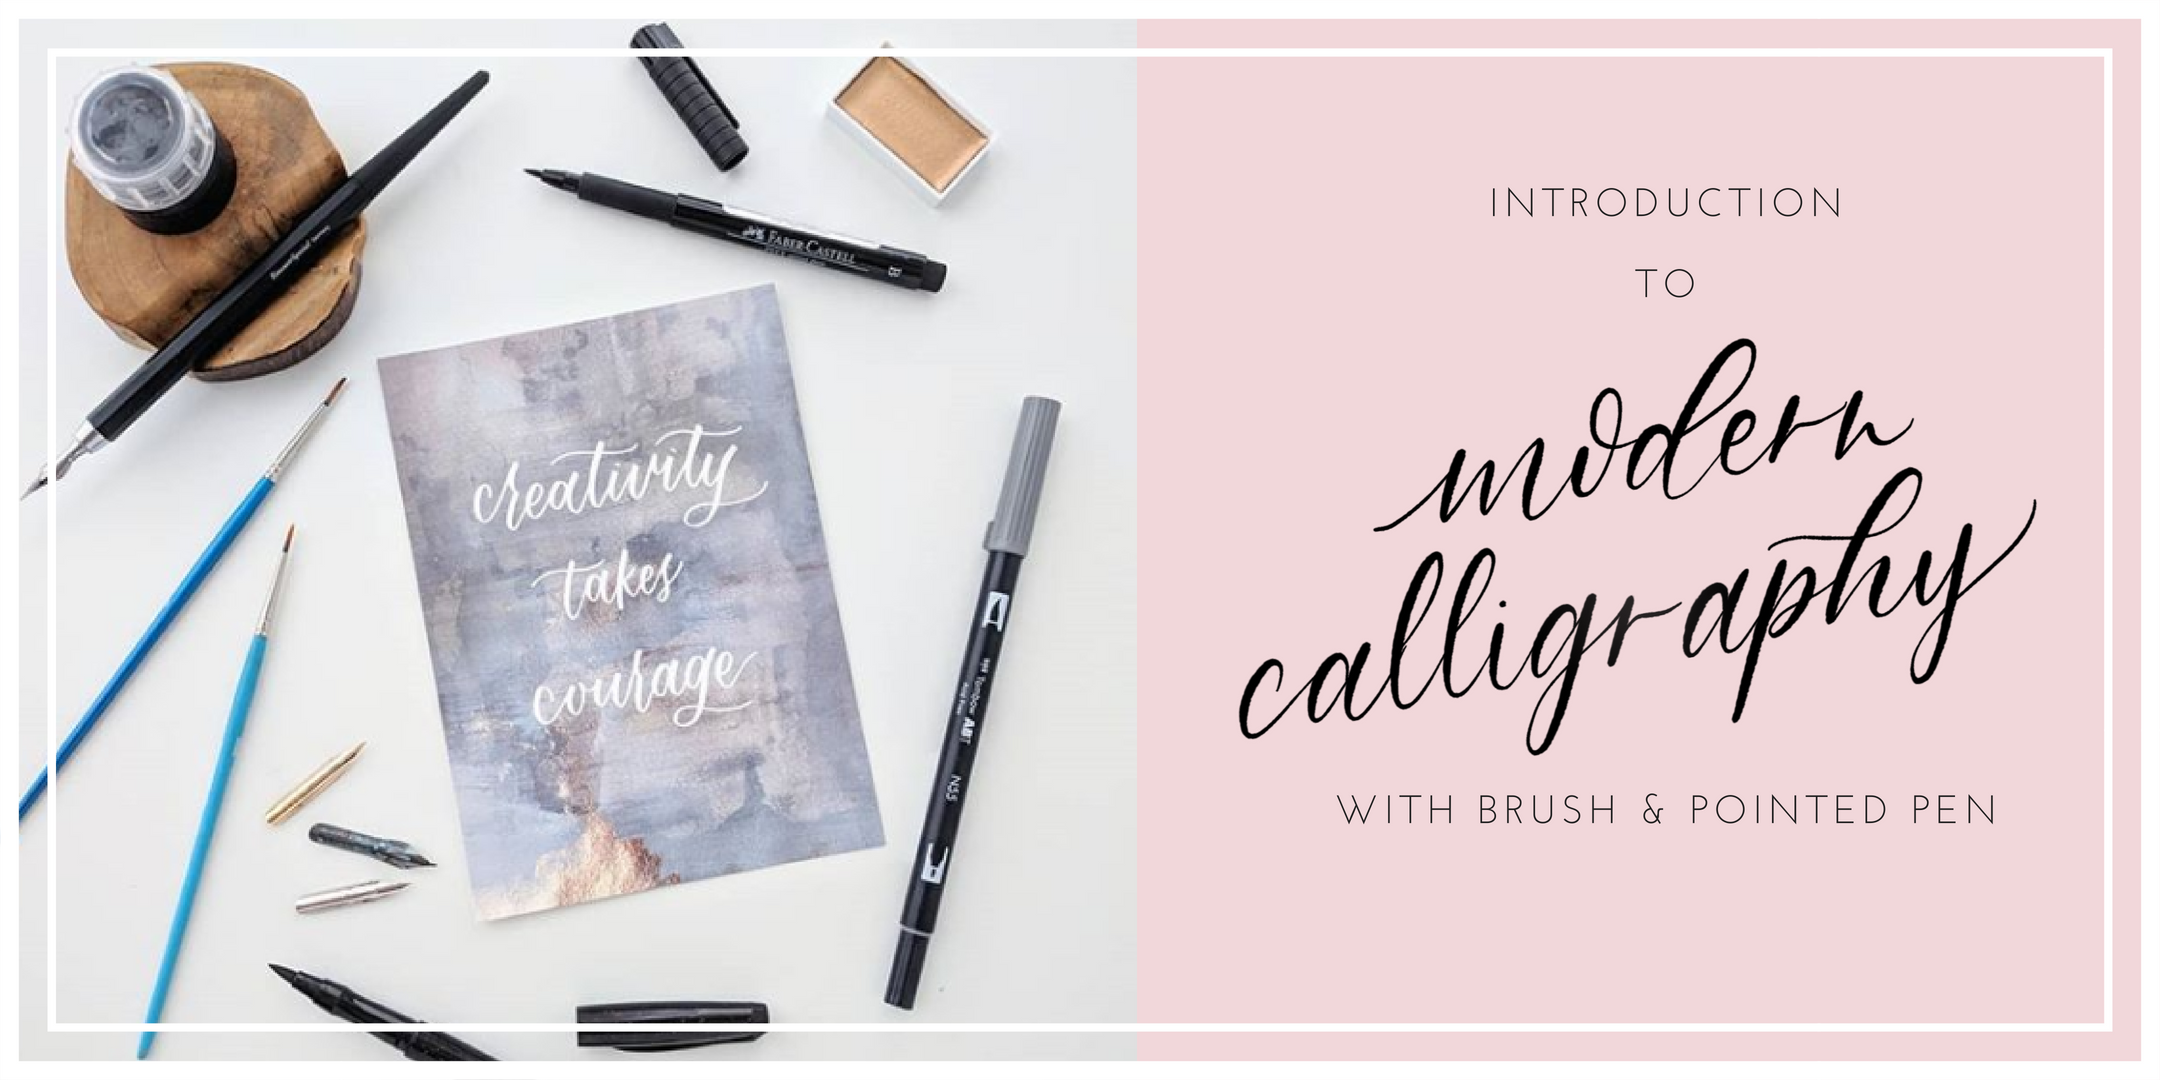 Modern calligraphy workshop with brush & pointed pen